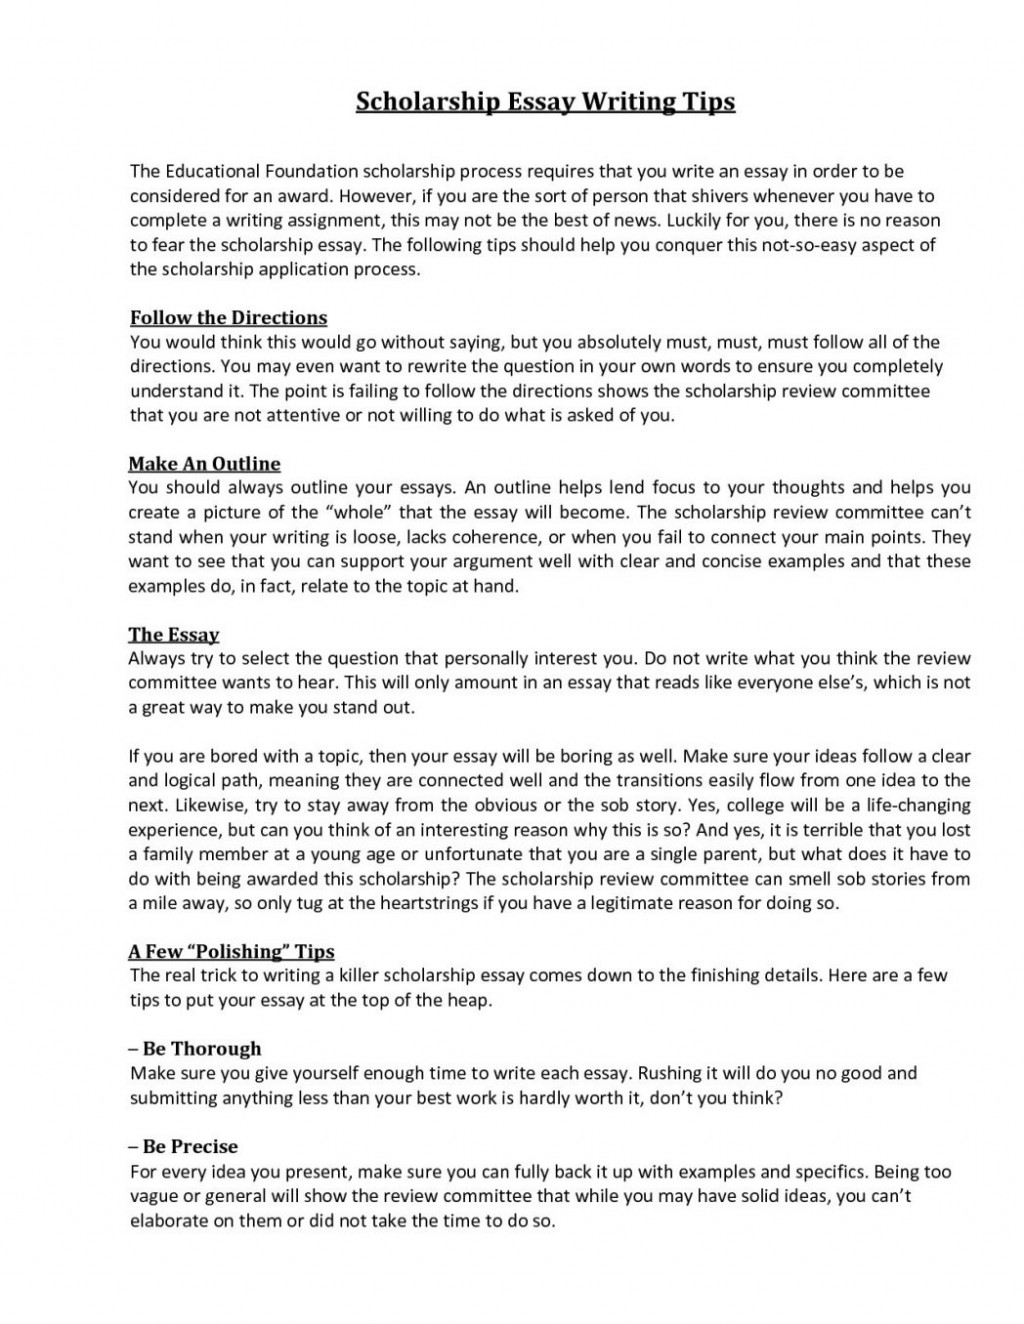 010 How To Write Essay For Scholarship Type Tips Writing Effective Essays Also Resume Winning 1048x1356 Best Incredible Large